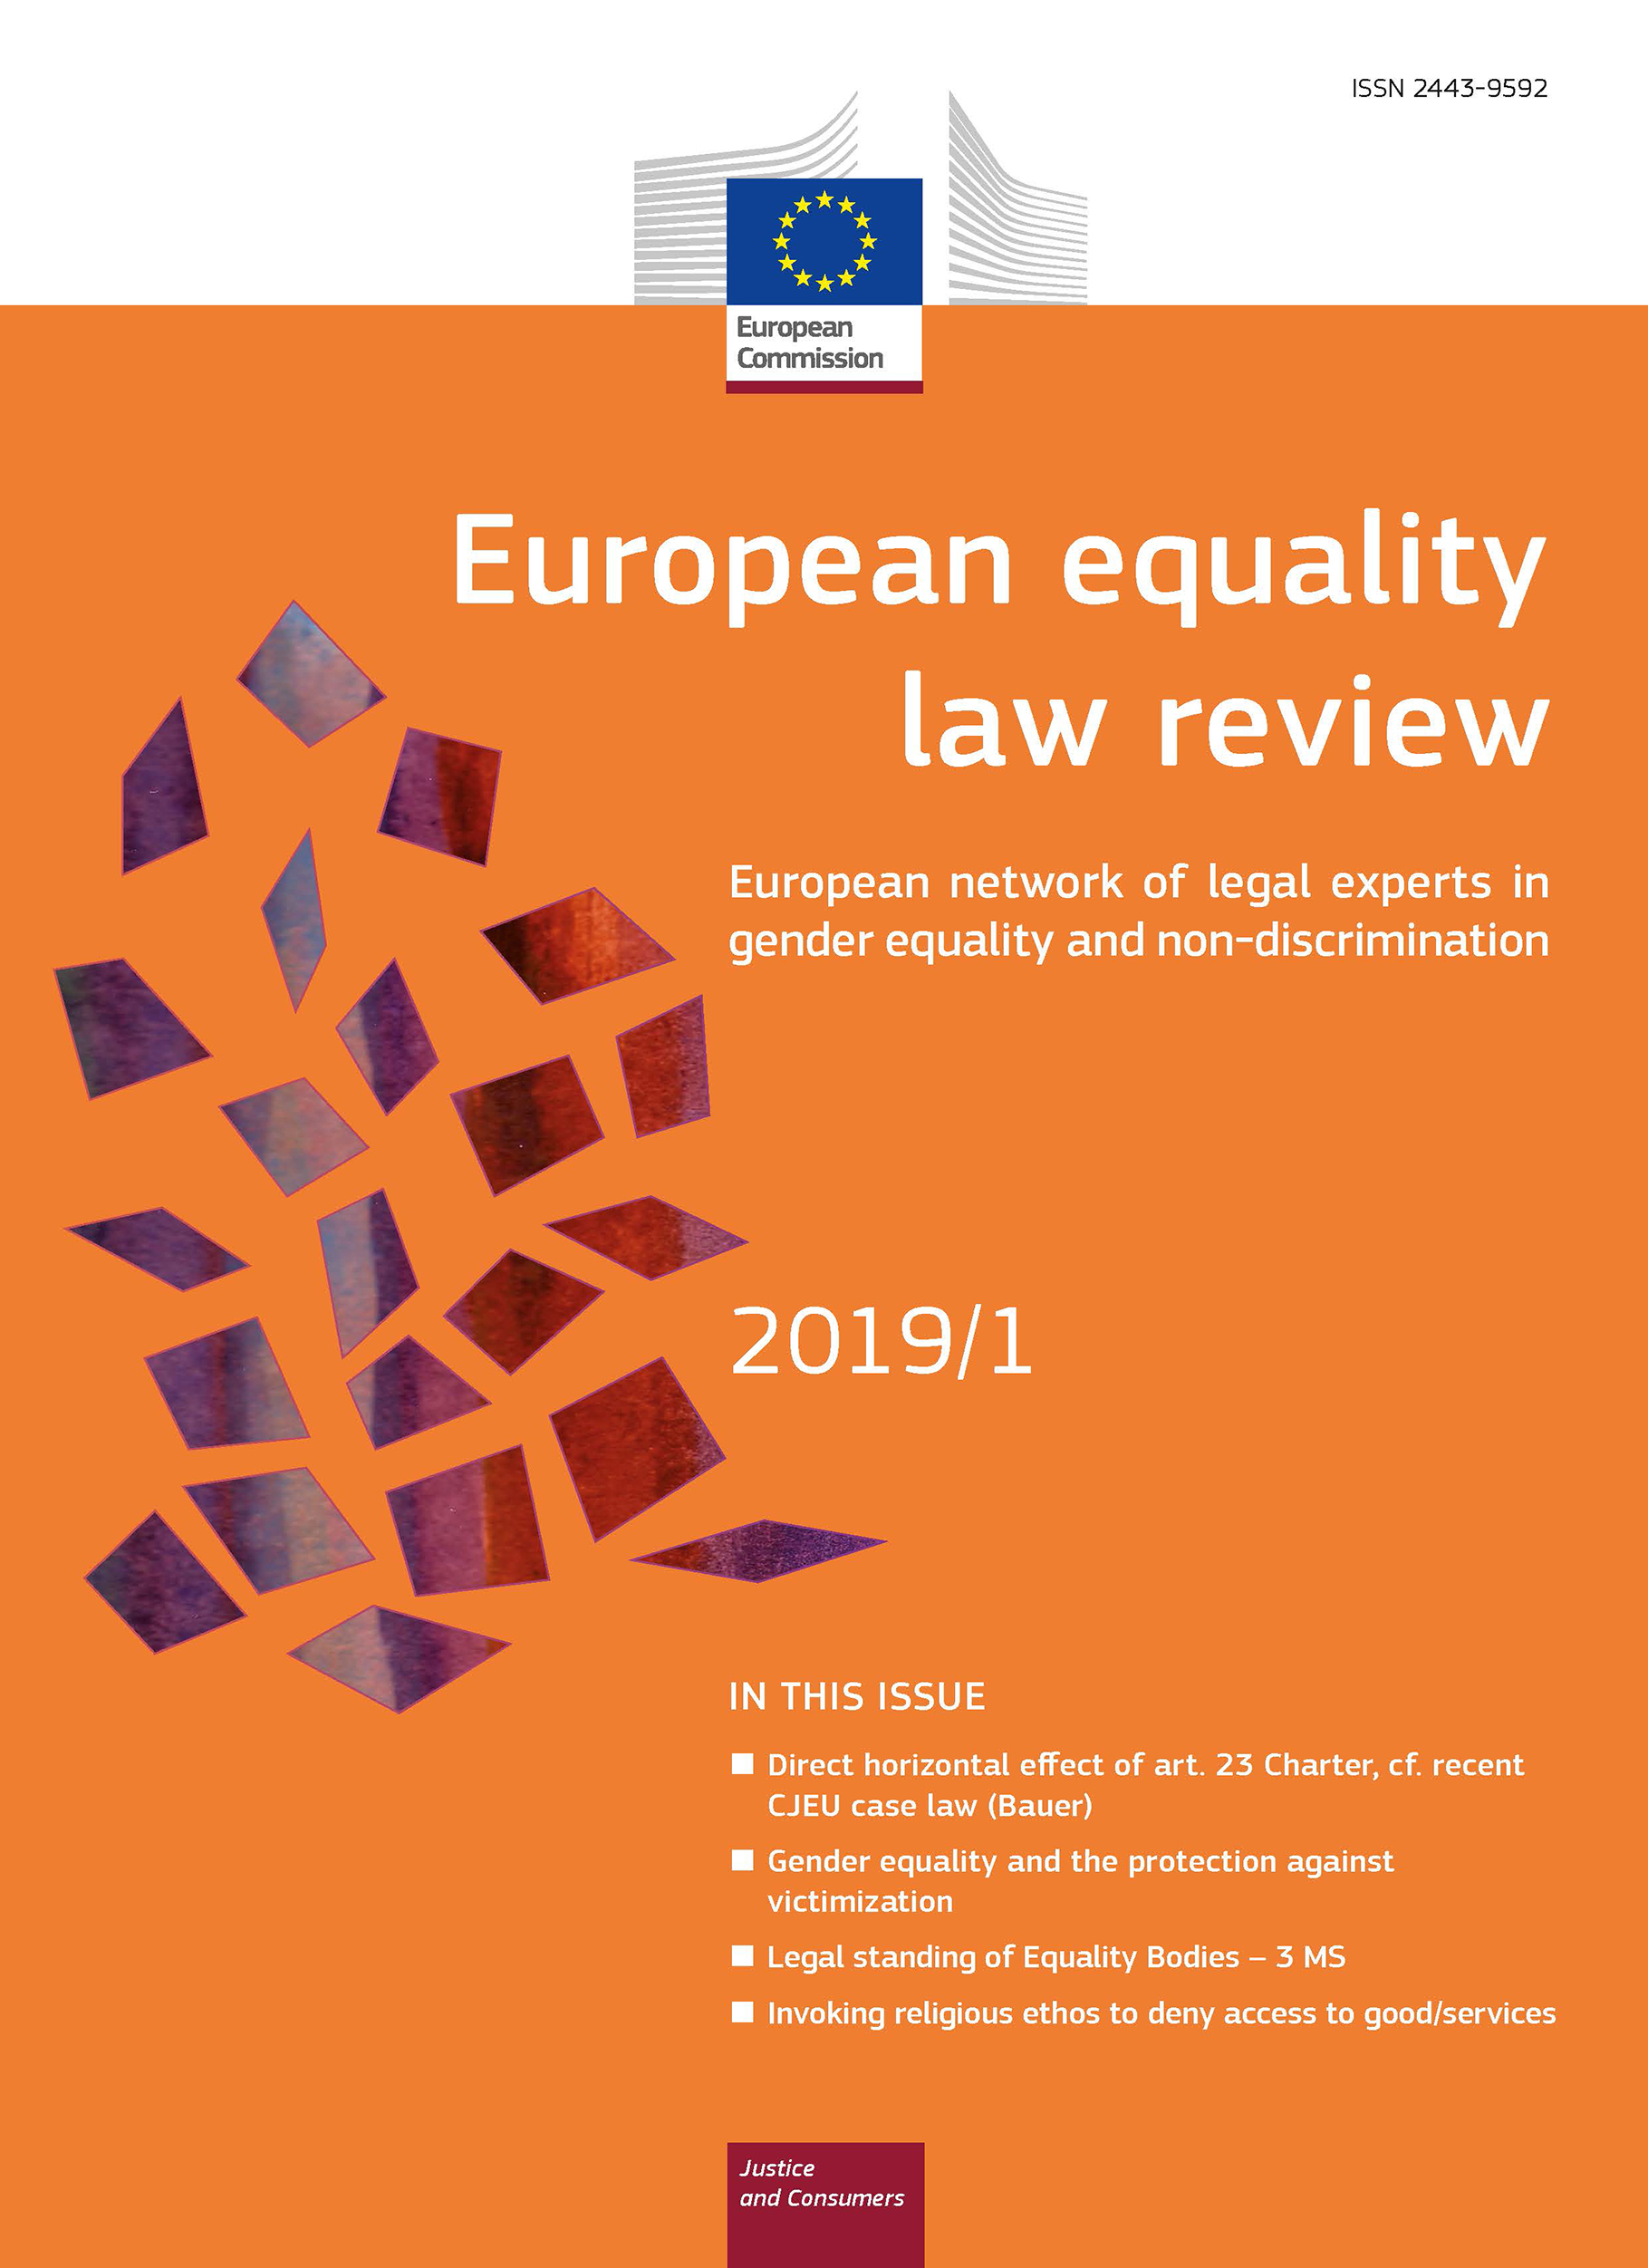 Cover image of European equality law review